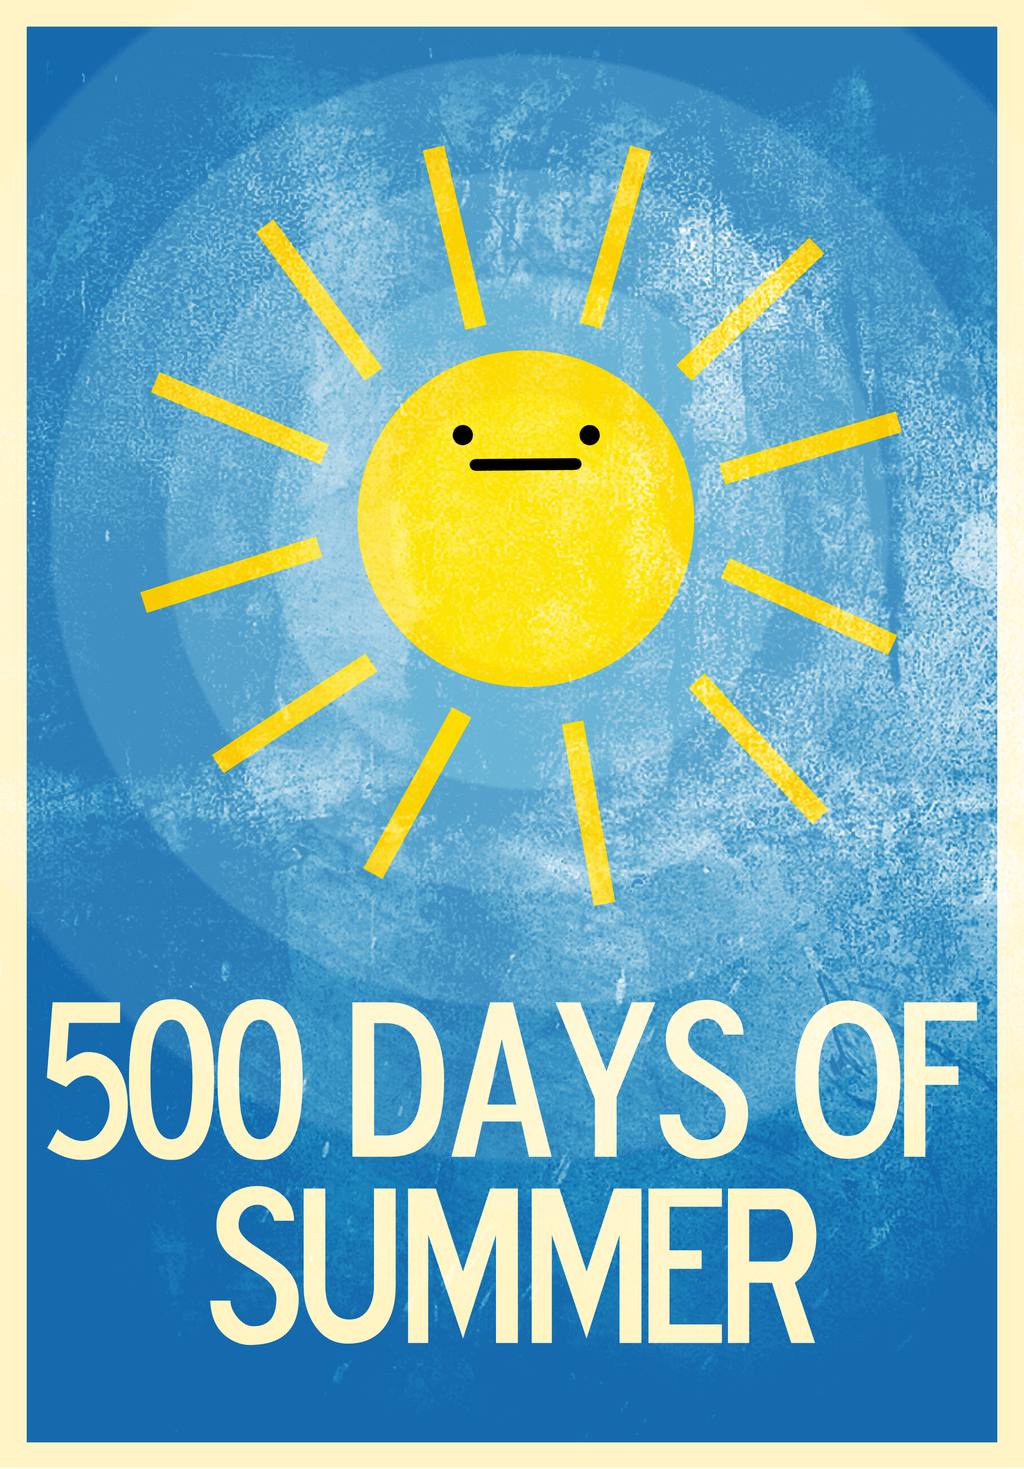 500 Days of Summer Poster by jxtutorials on DeviantArt